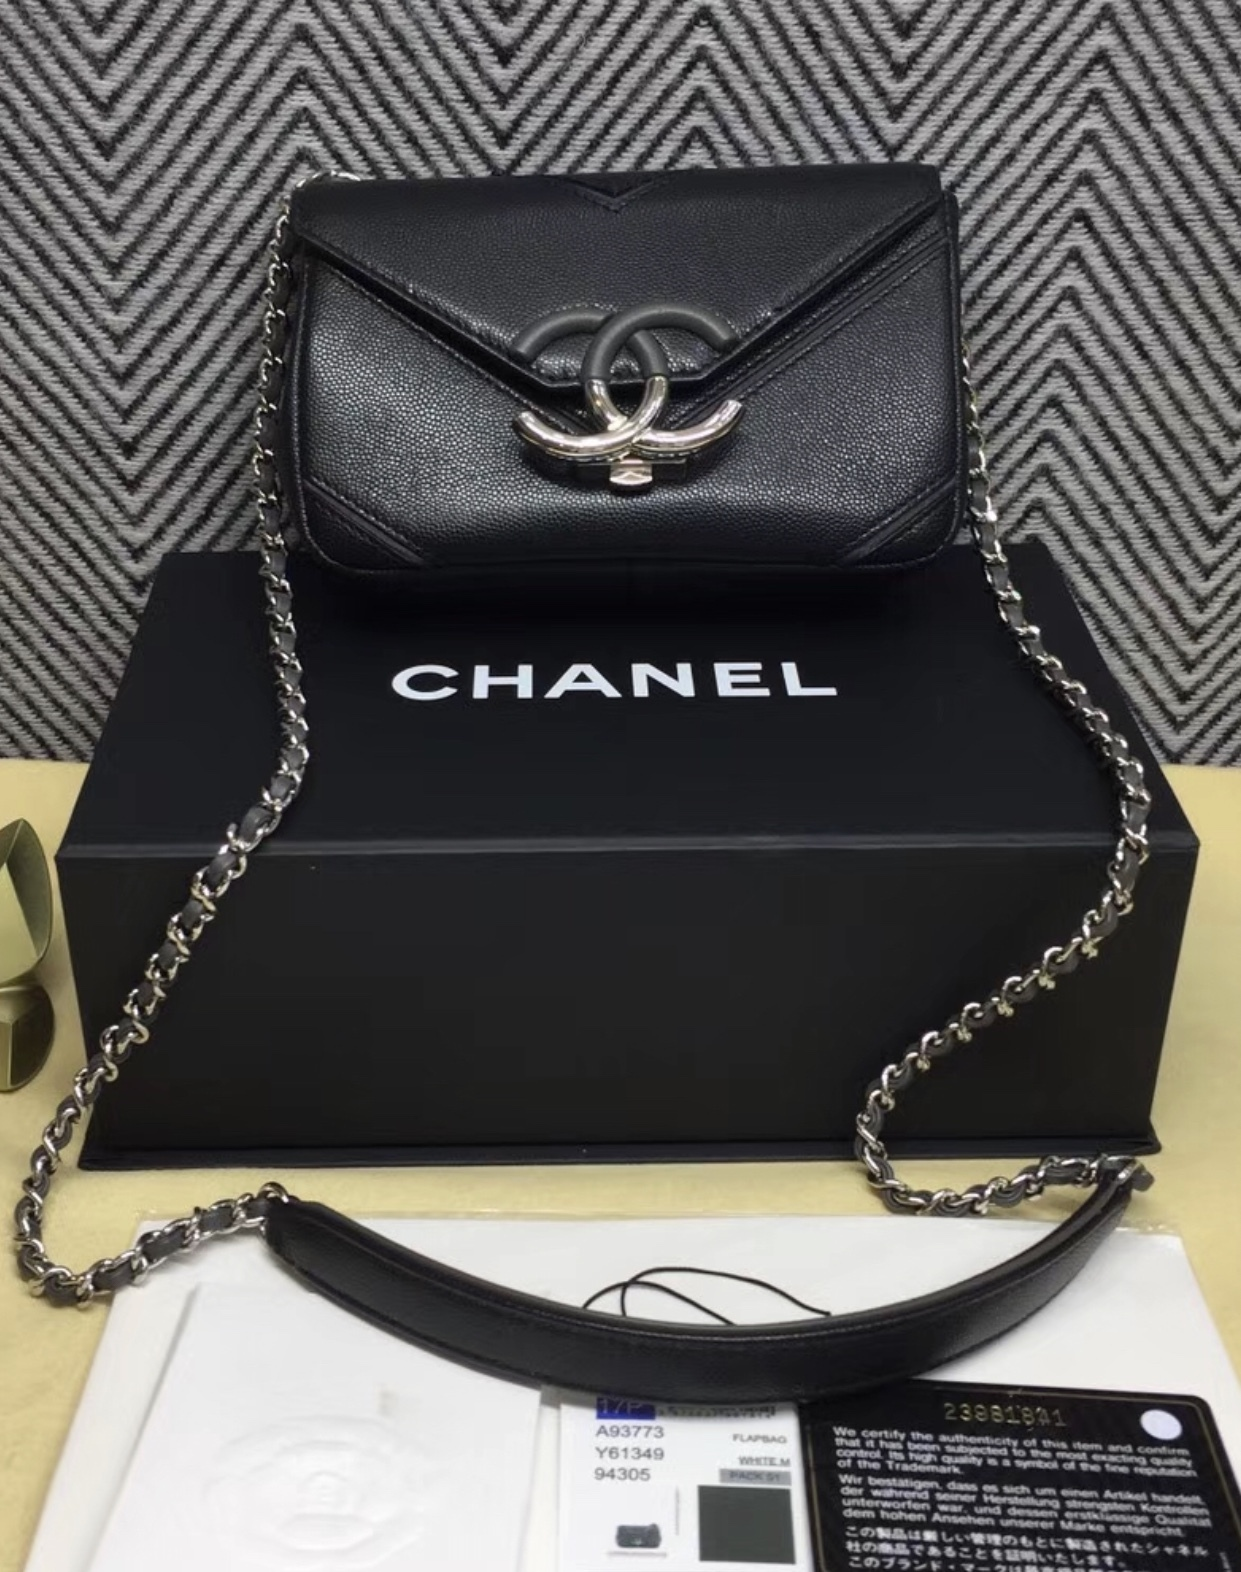 8f27a3892a1c NEW AUTHENTIC CHANEL 2017 BLACK GRAINED CALFSKIN CHEVRON SMALL FLAP BAG